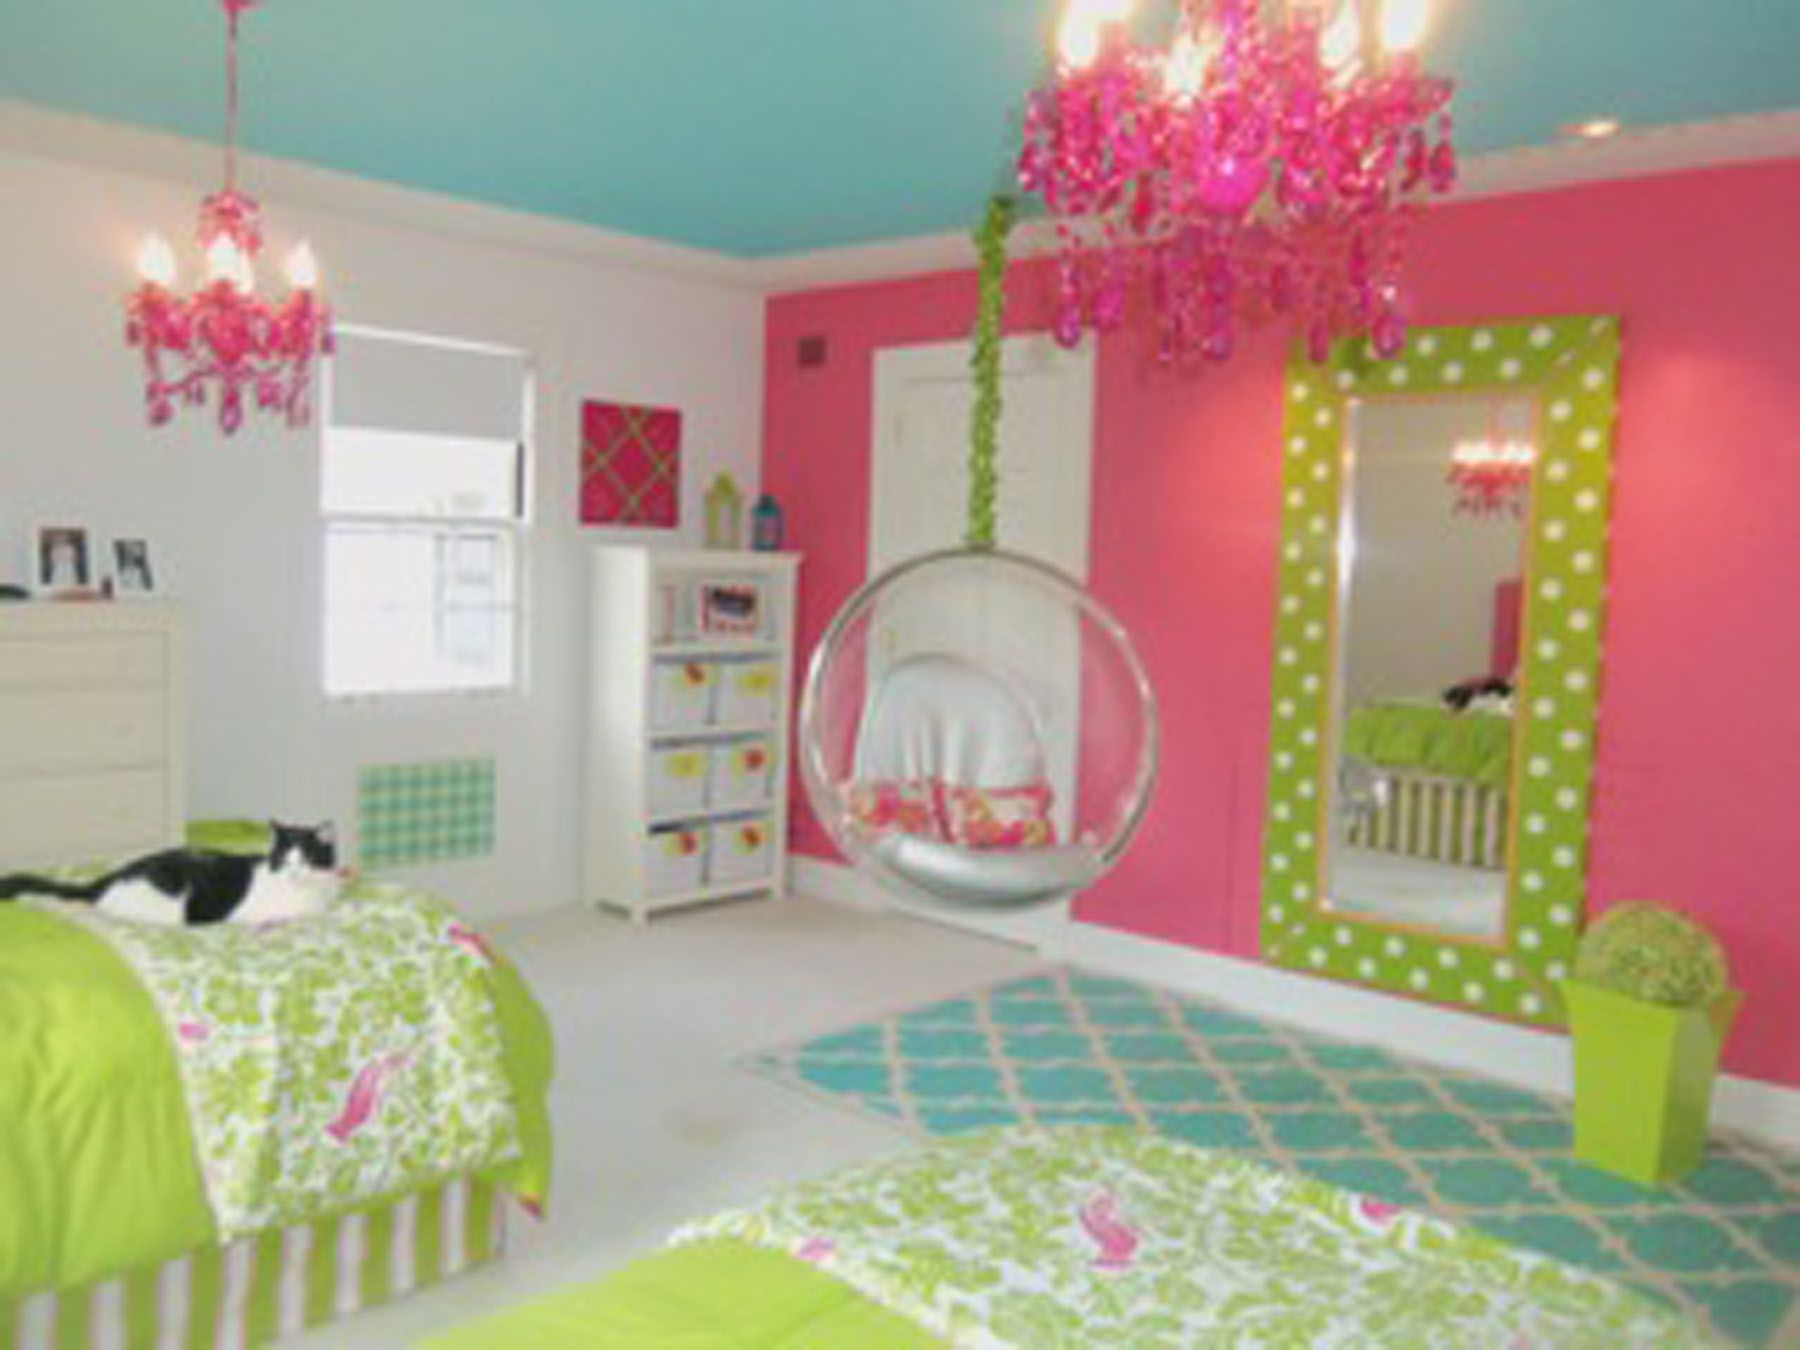 Bedrooms for girls teenagers ideas - Teen Room Makeover Decor 2 Ur Door Custom Bedding